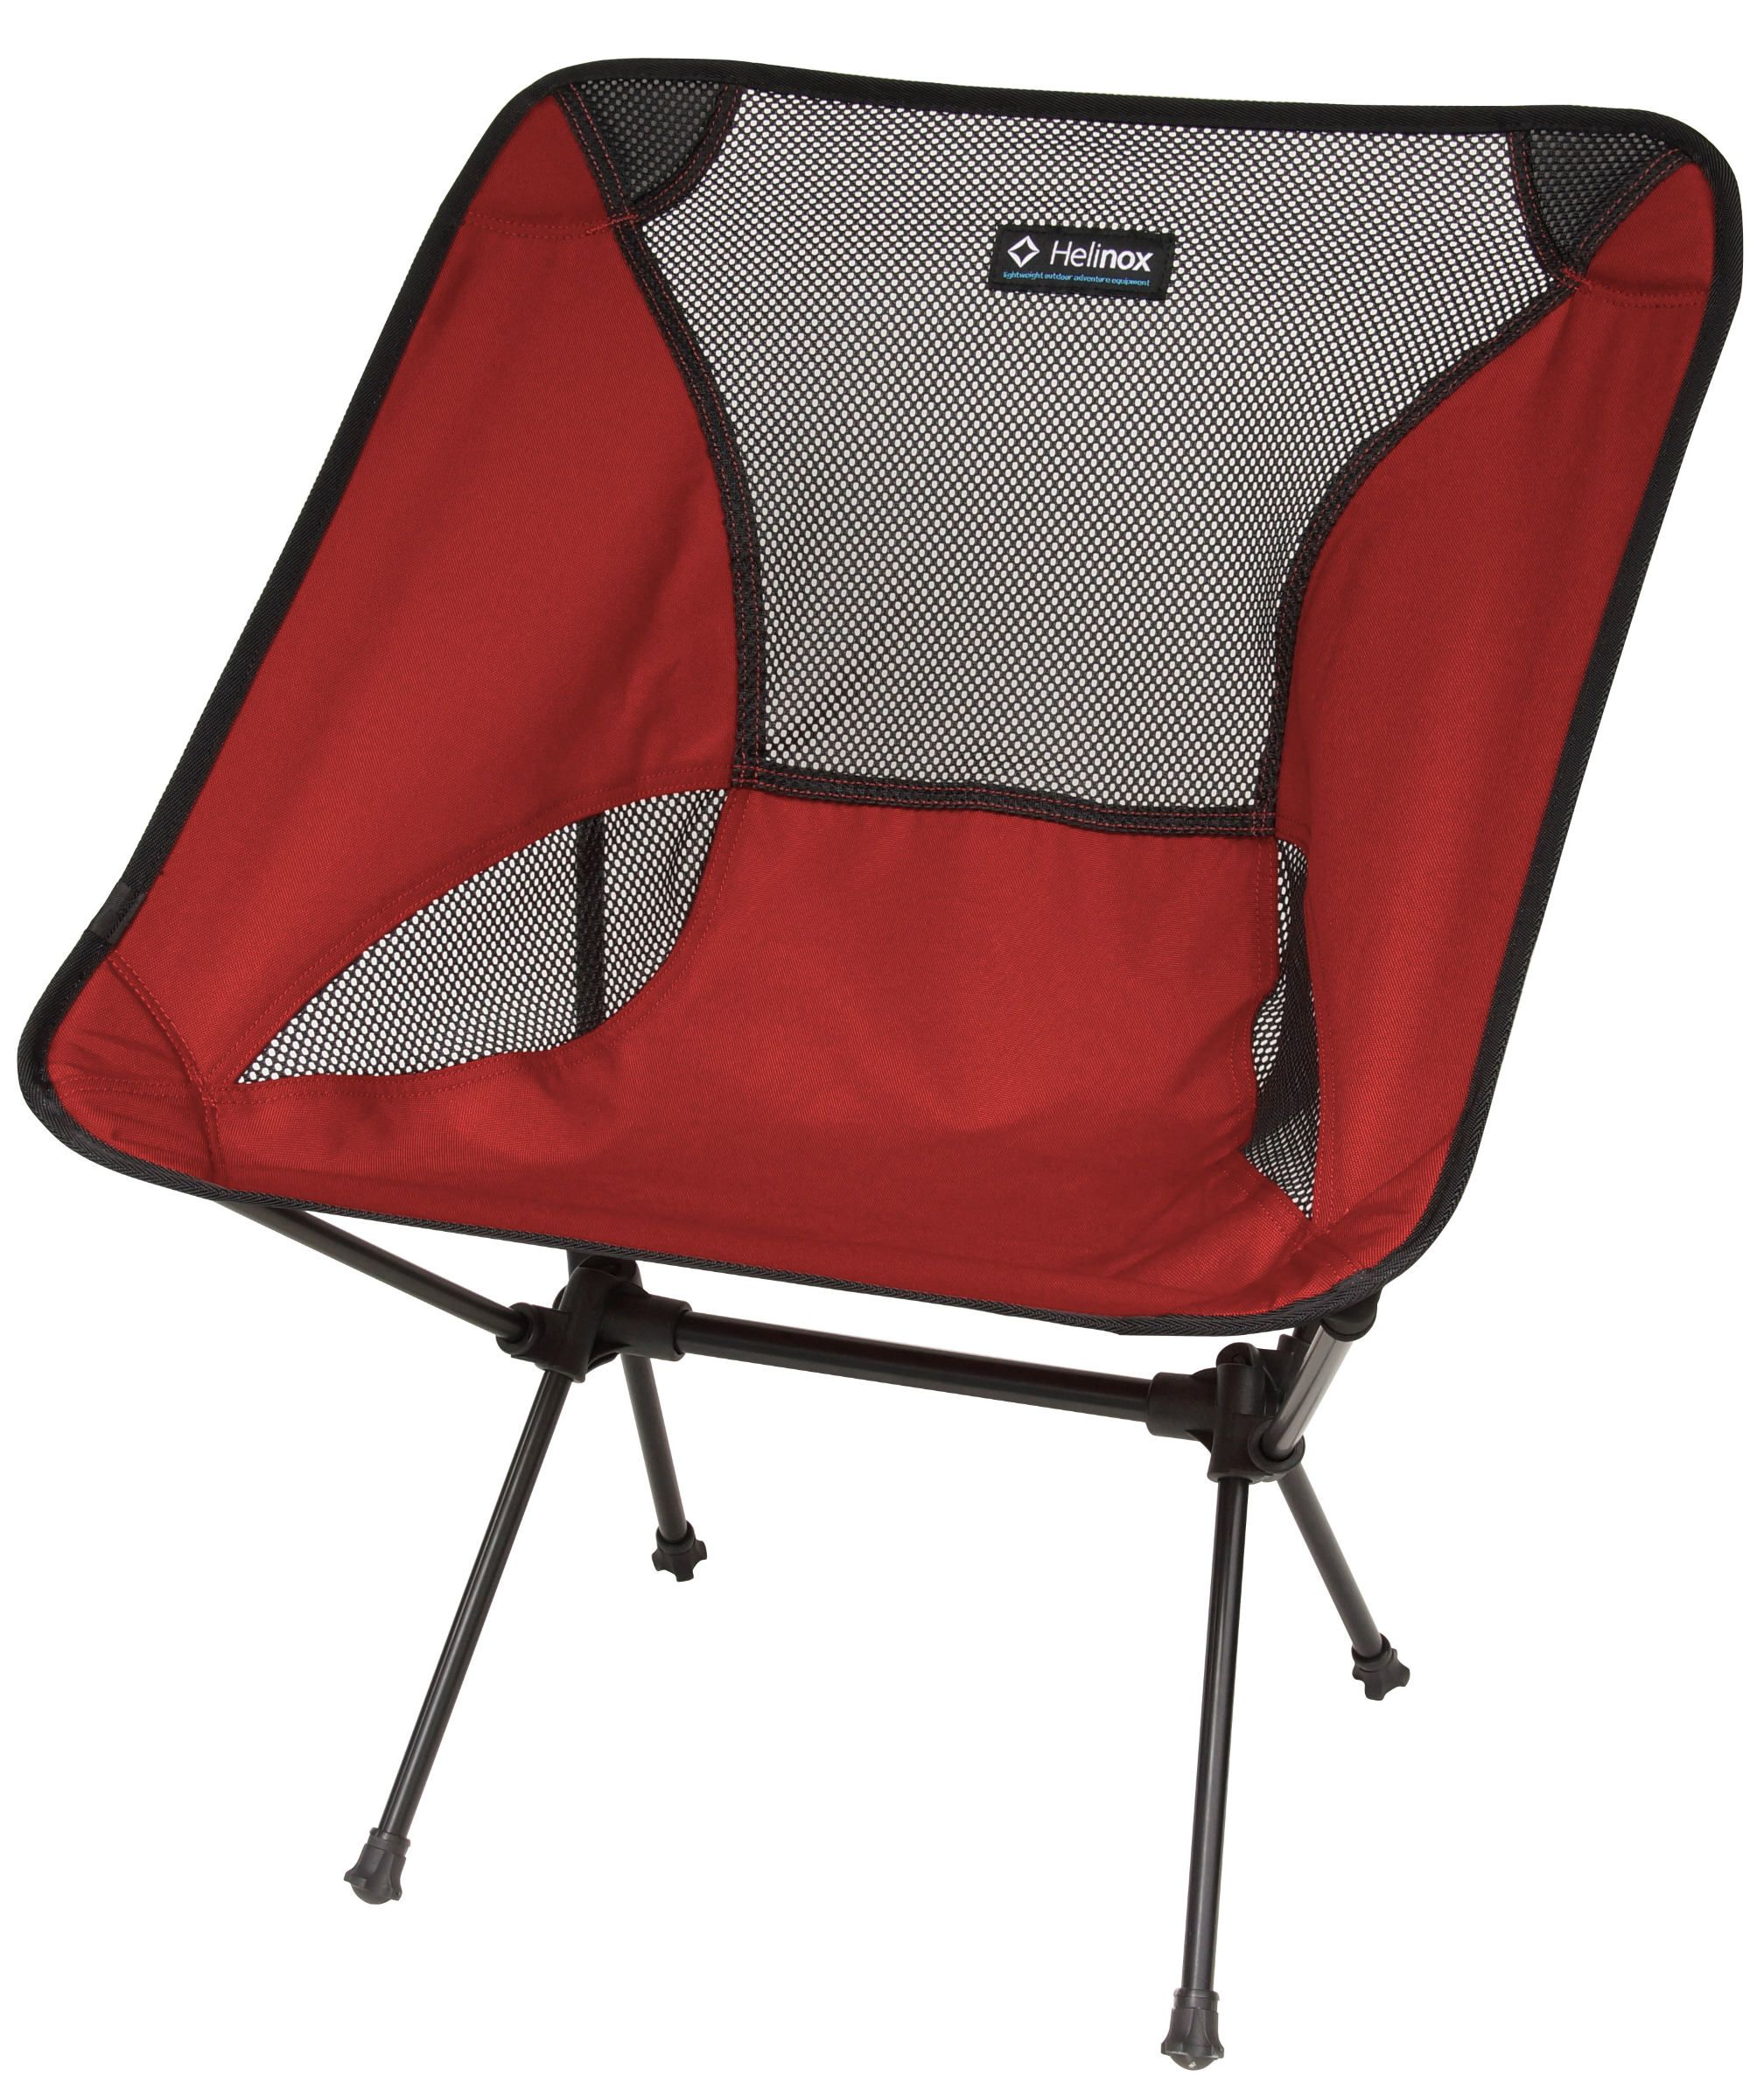 Helinox Chair One Outdoorsy Camping Chairs Chair